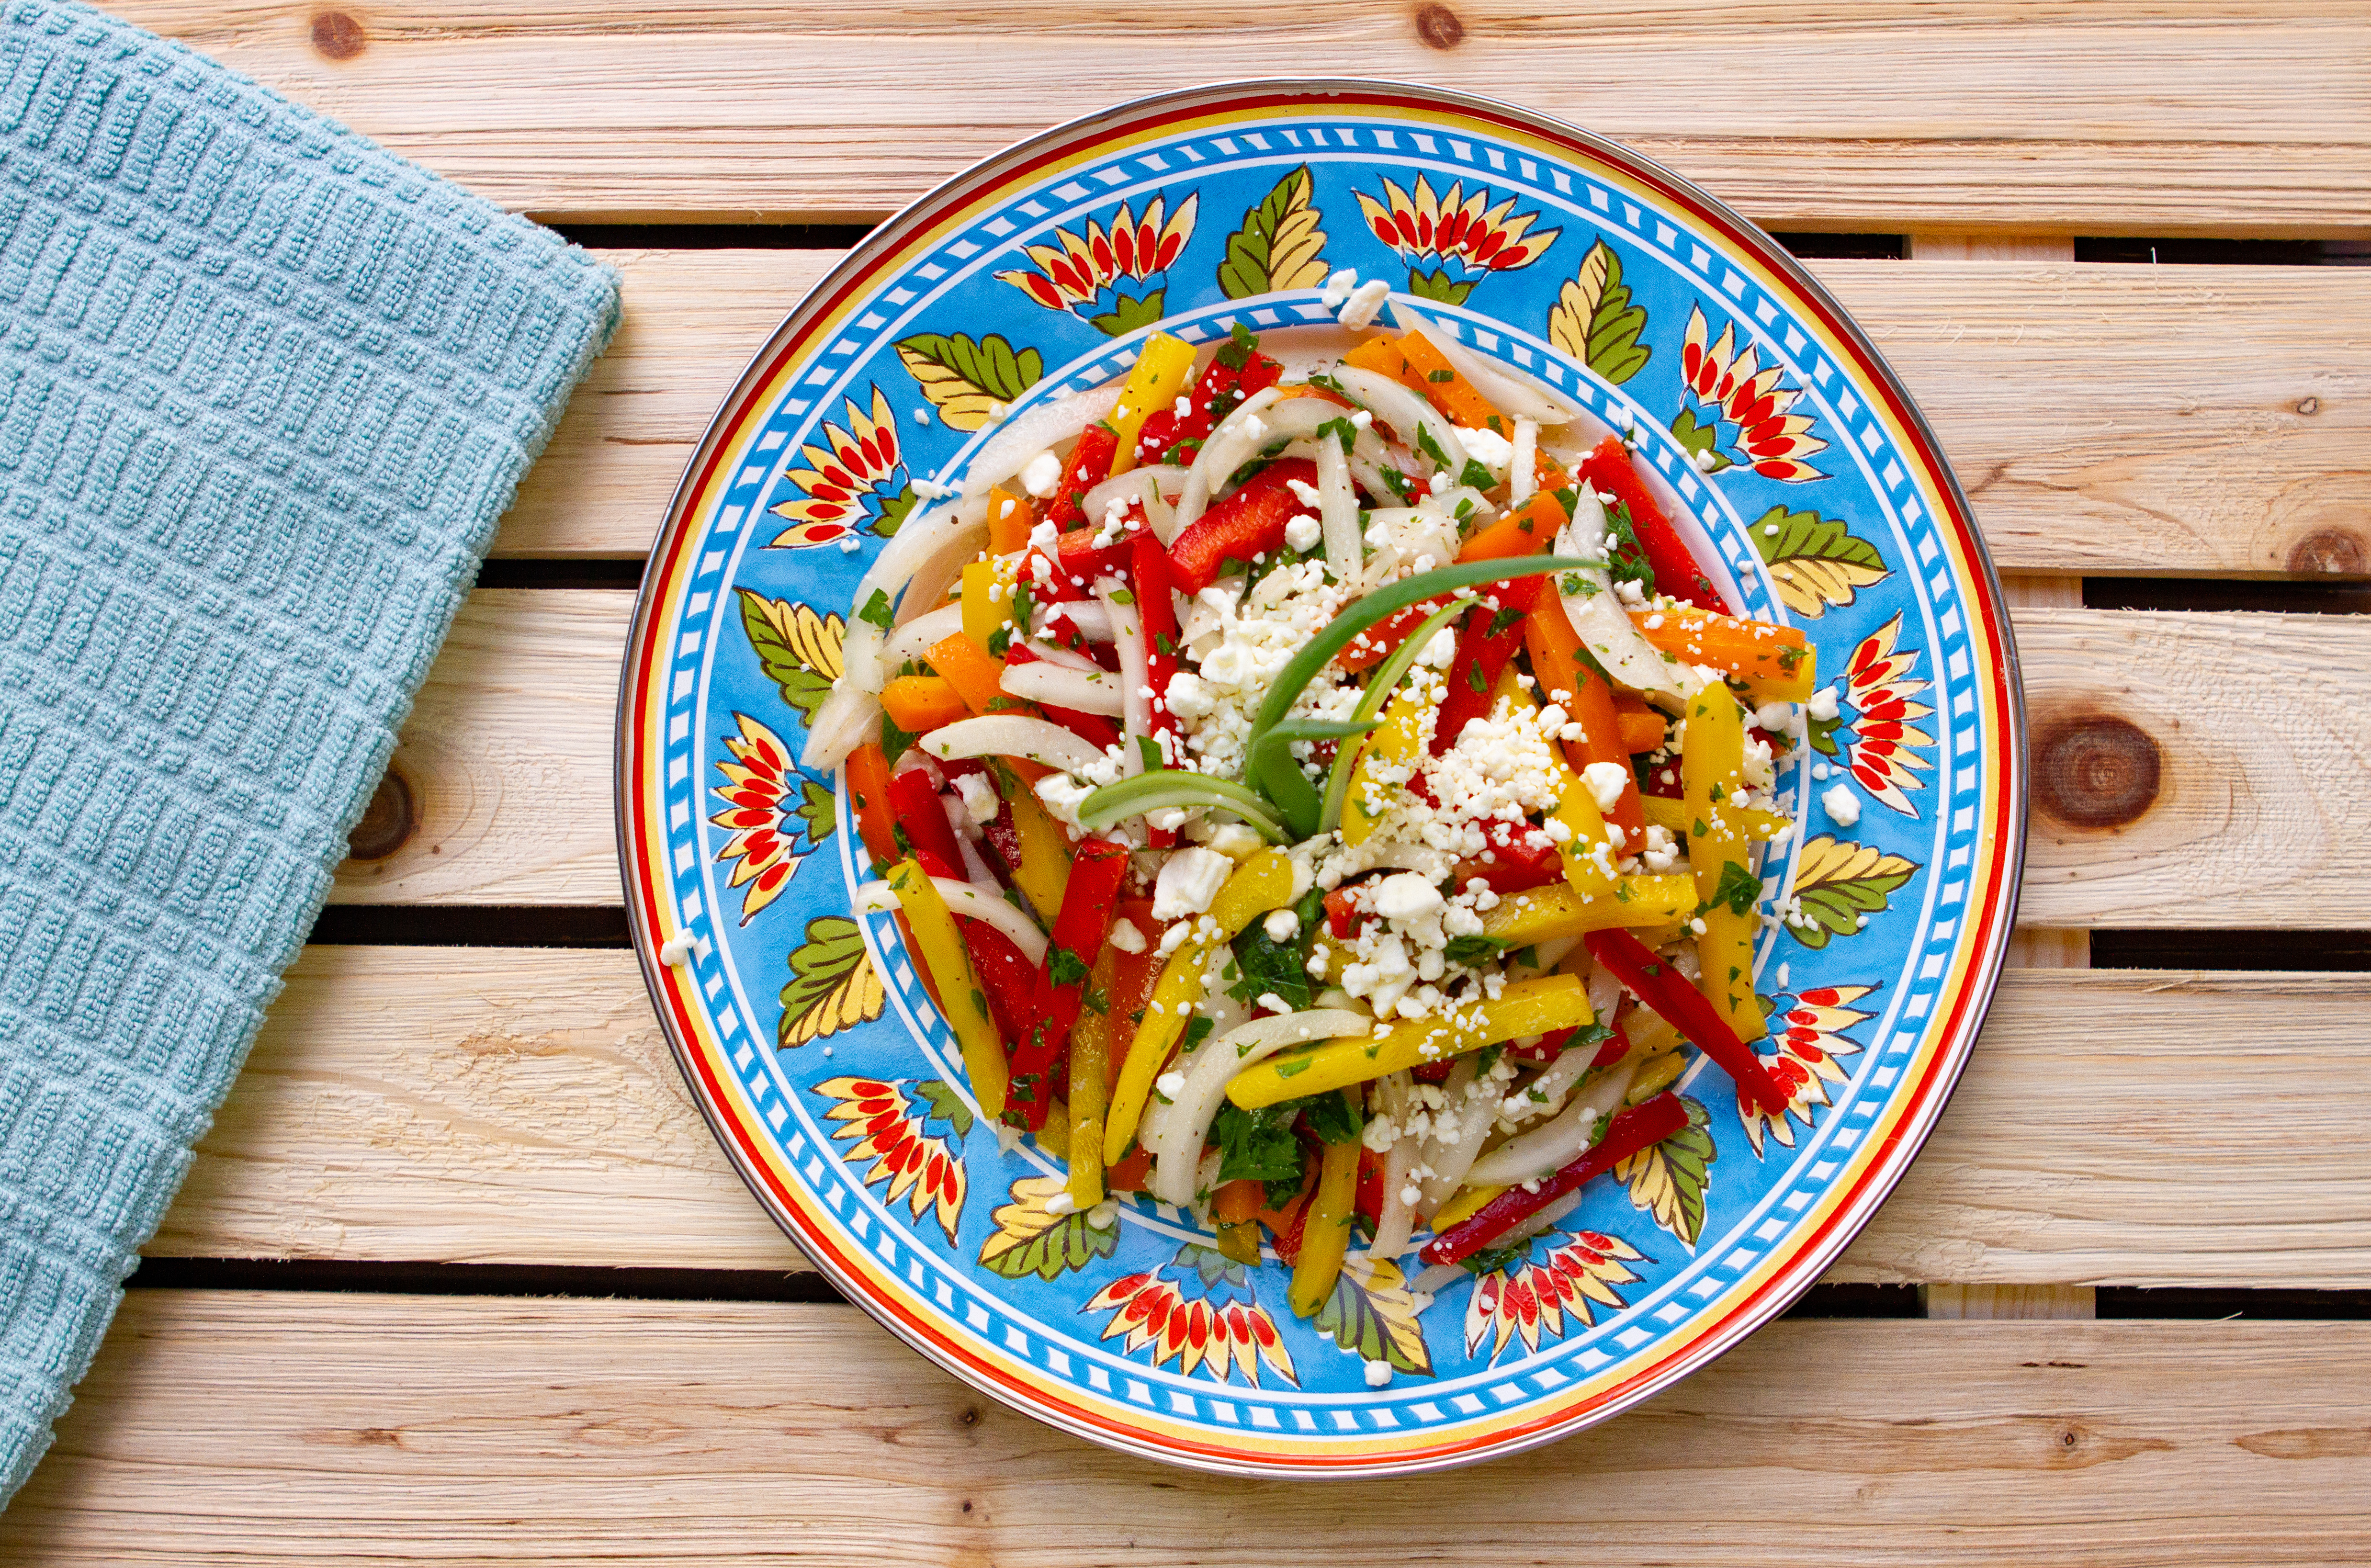 5 Major Benefits of Bell Peppers and a Florida Three Pepper Salad Recipe